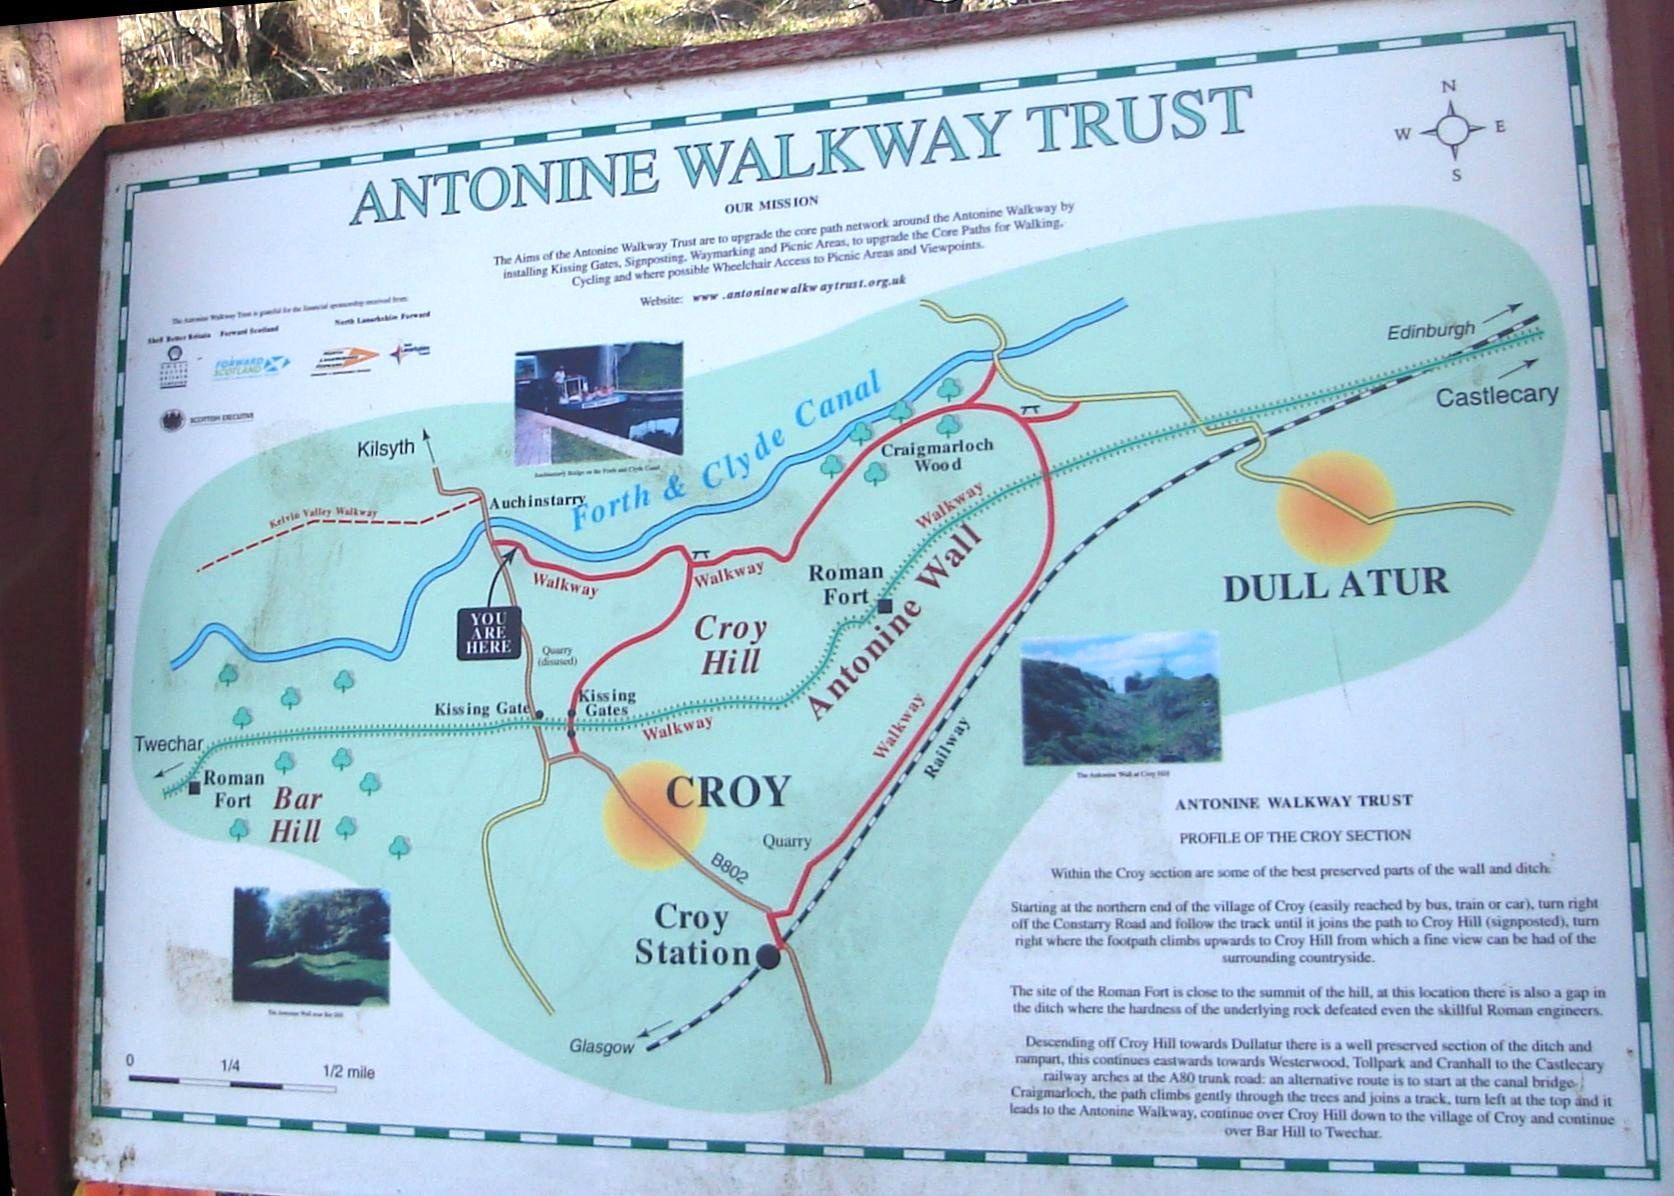 Antonine Wall Mapof The Antonine Wall At Croy Hill